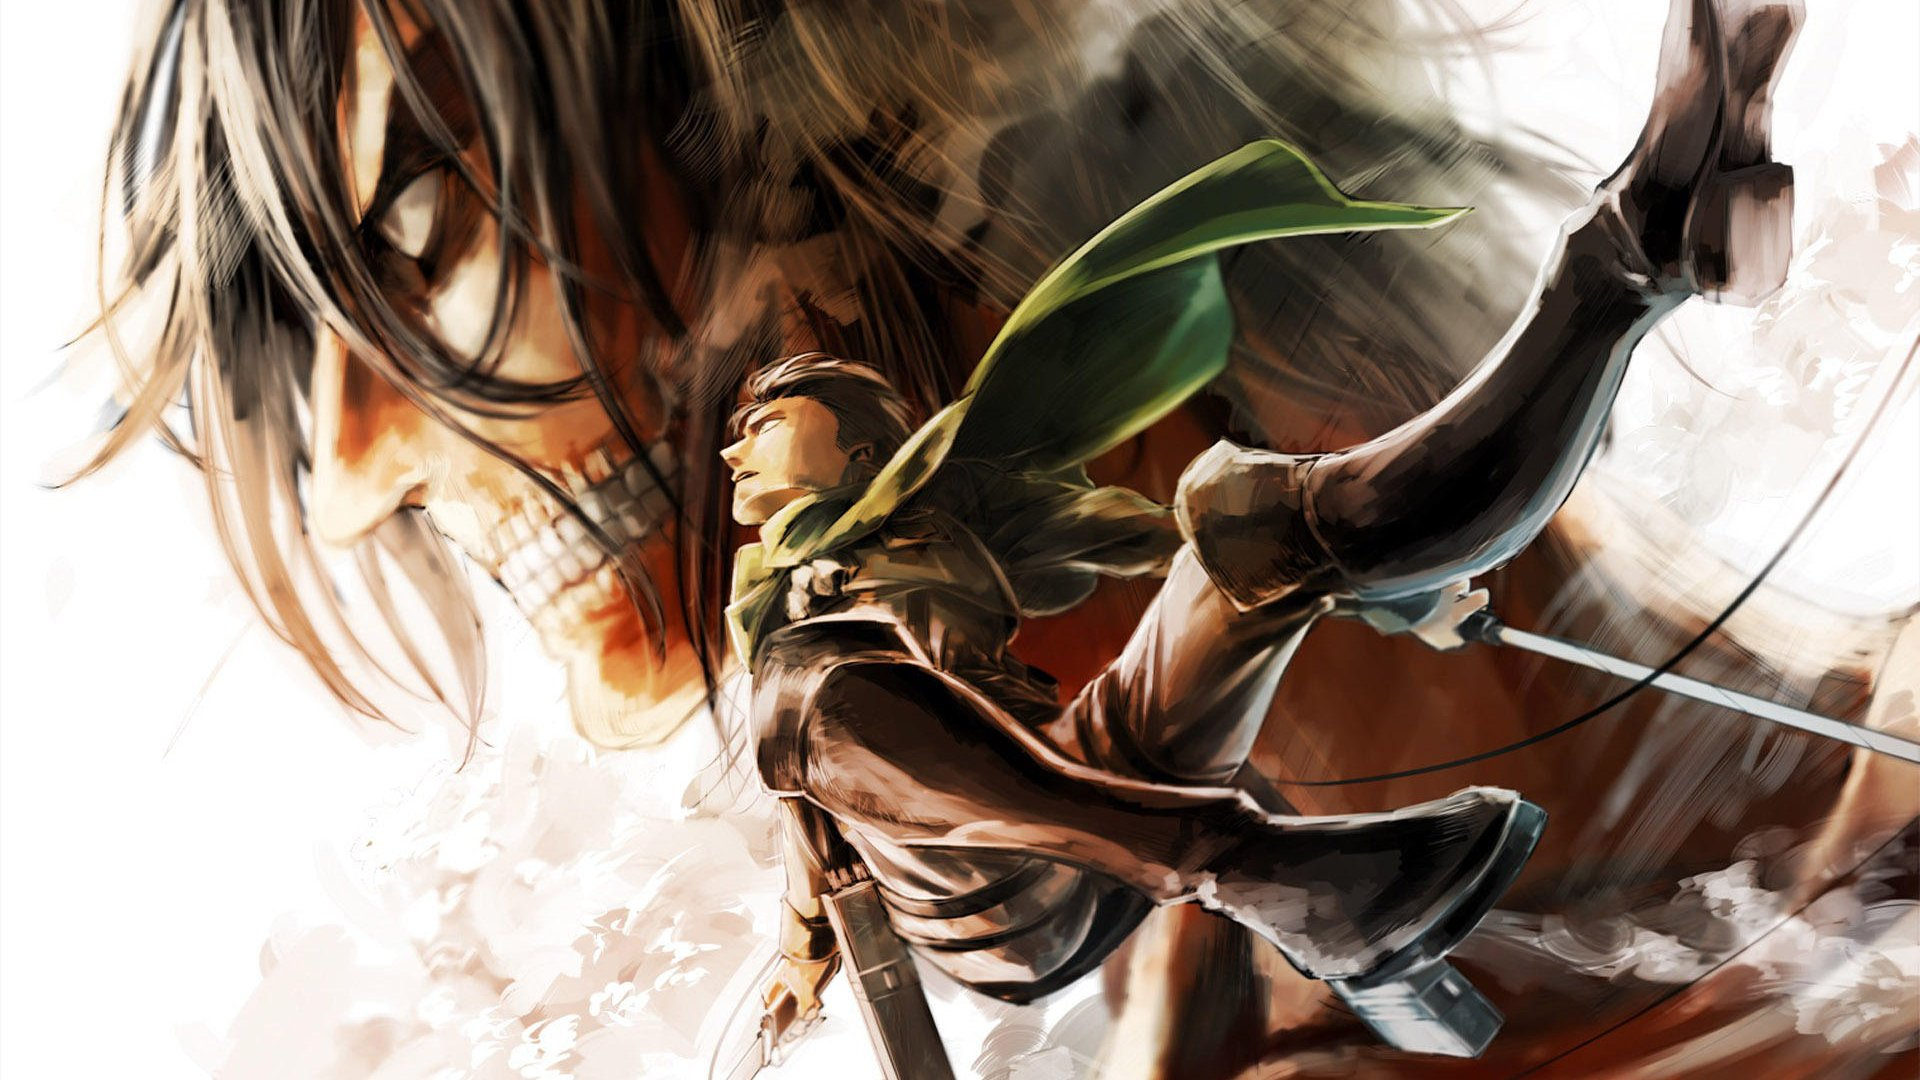 Anime Phone Wallpaper Attack On Titan Anime Wallpapers